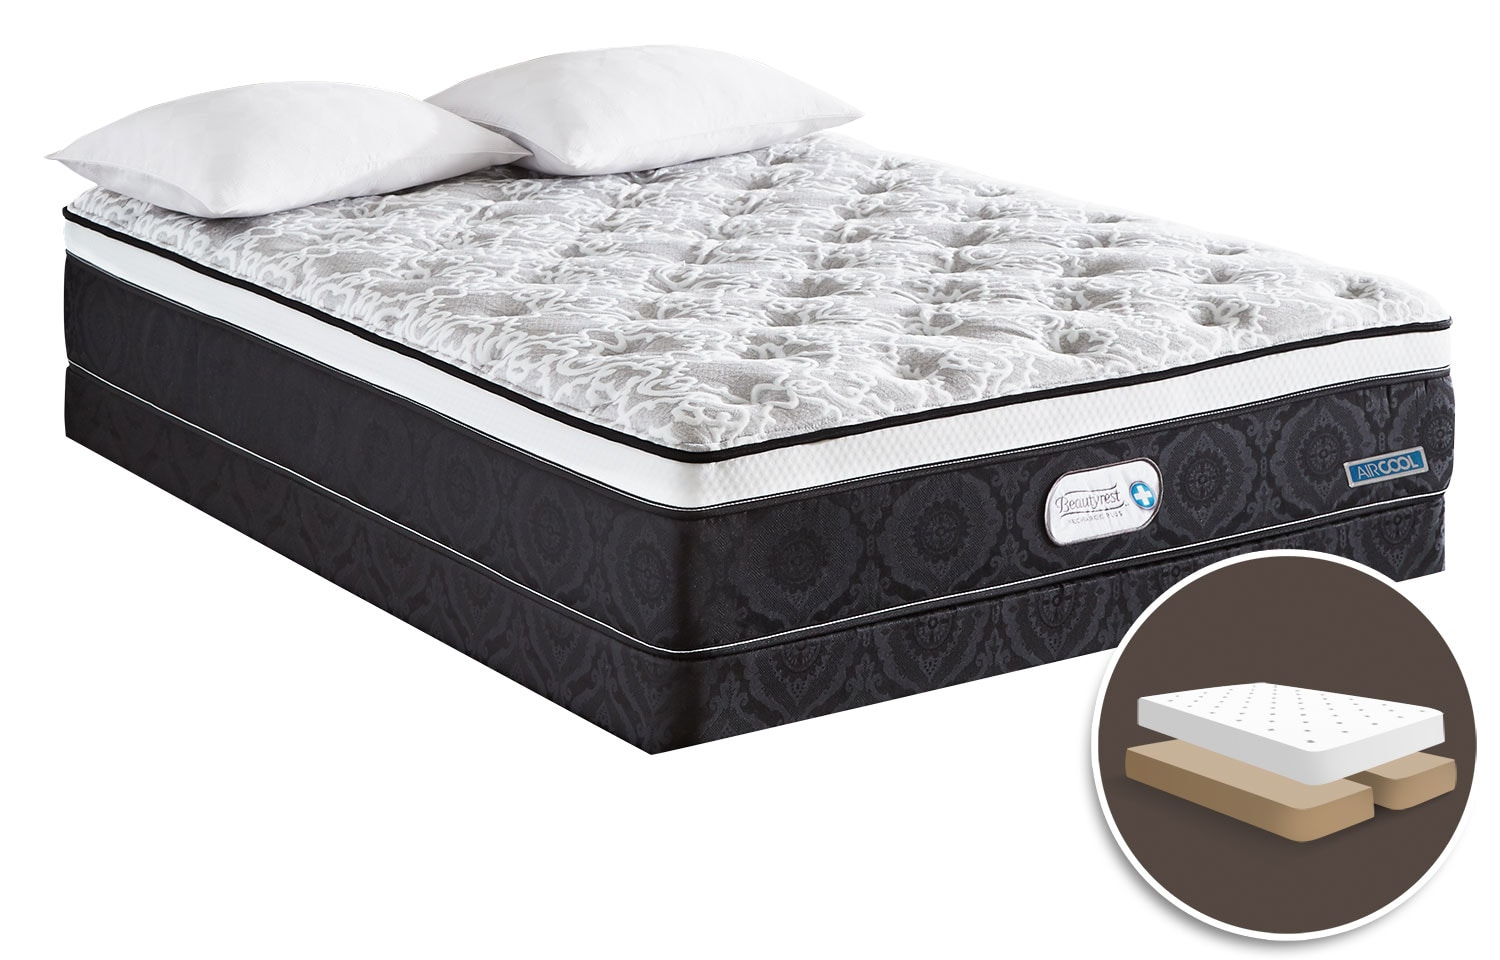 Mattresses and Bedding - Simmons Beautyrest® Recharge Anthem Comfort Top Firm Queen Set with Split Boxspring